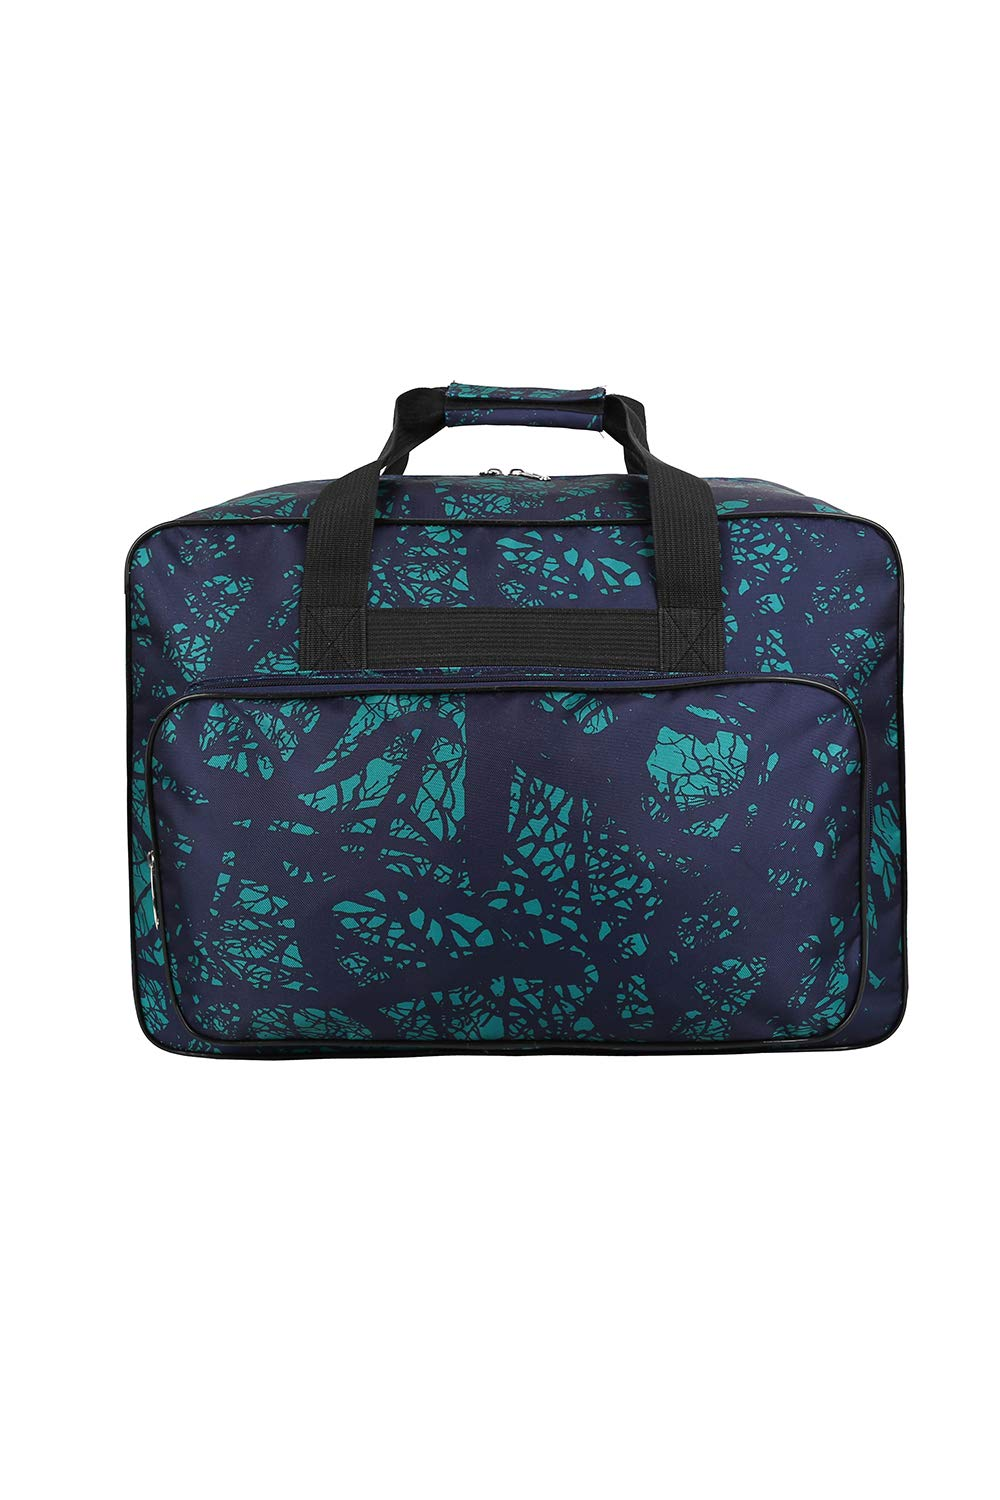 Small,Medium and Big Size Sewing Machine Carrying Case Tote Bag ...